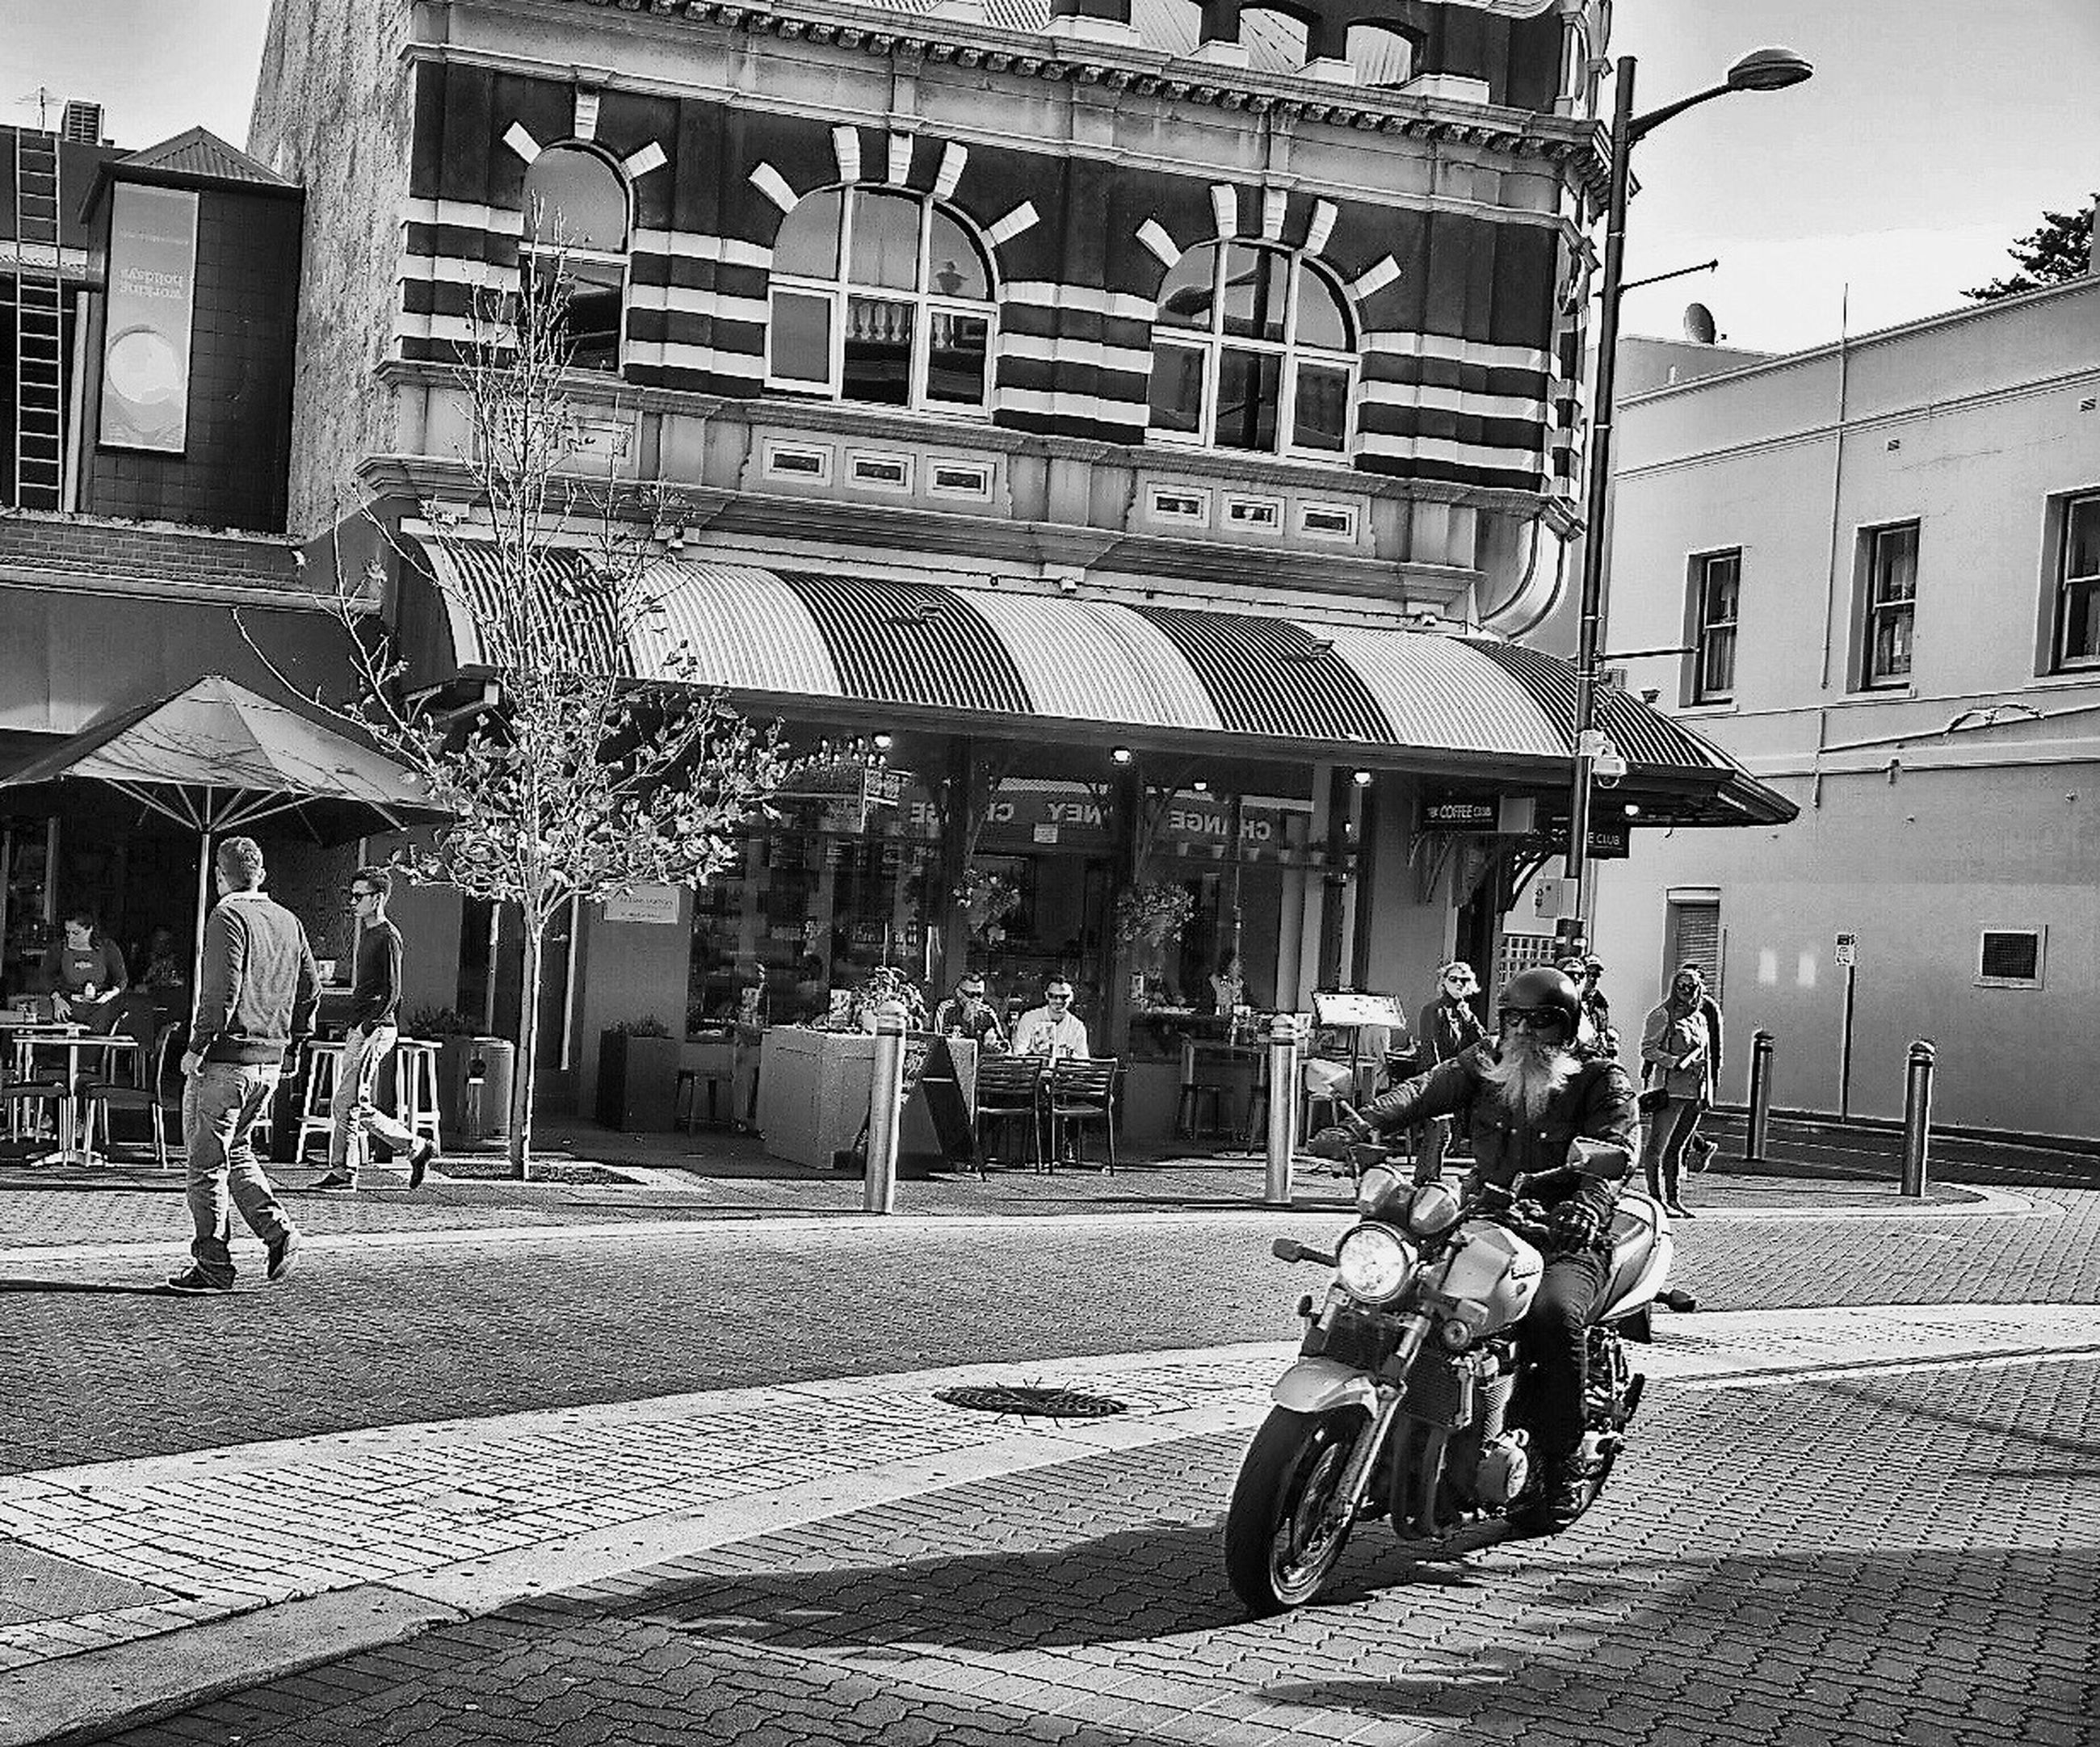 building exterior, built structure, architecture, transportation, street, outdoors, riding, two people, city, real people, day, women, motorcycle, men, lifestyles, full length, togetherness, adult, awning, people, mammal, sky, adults only